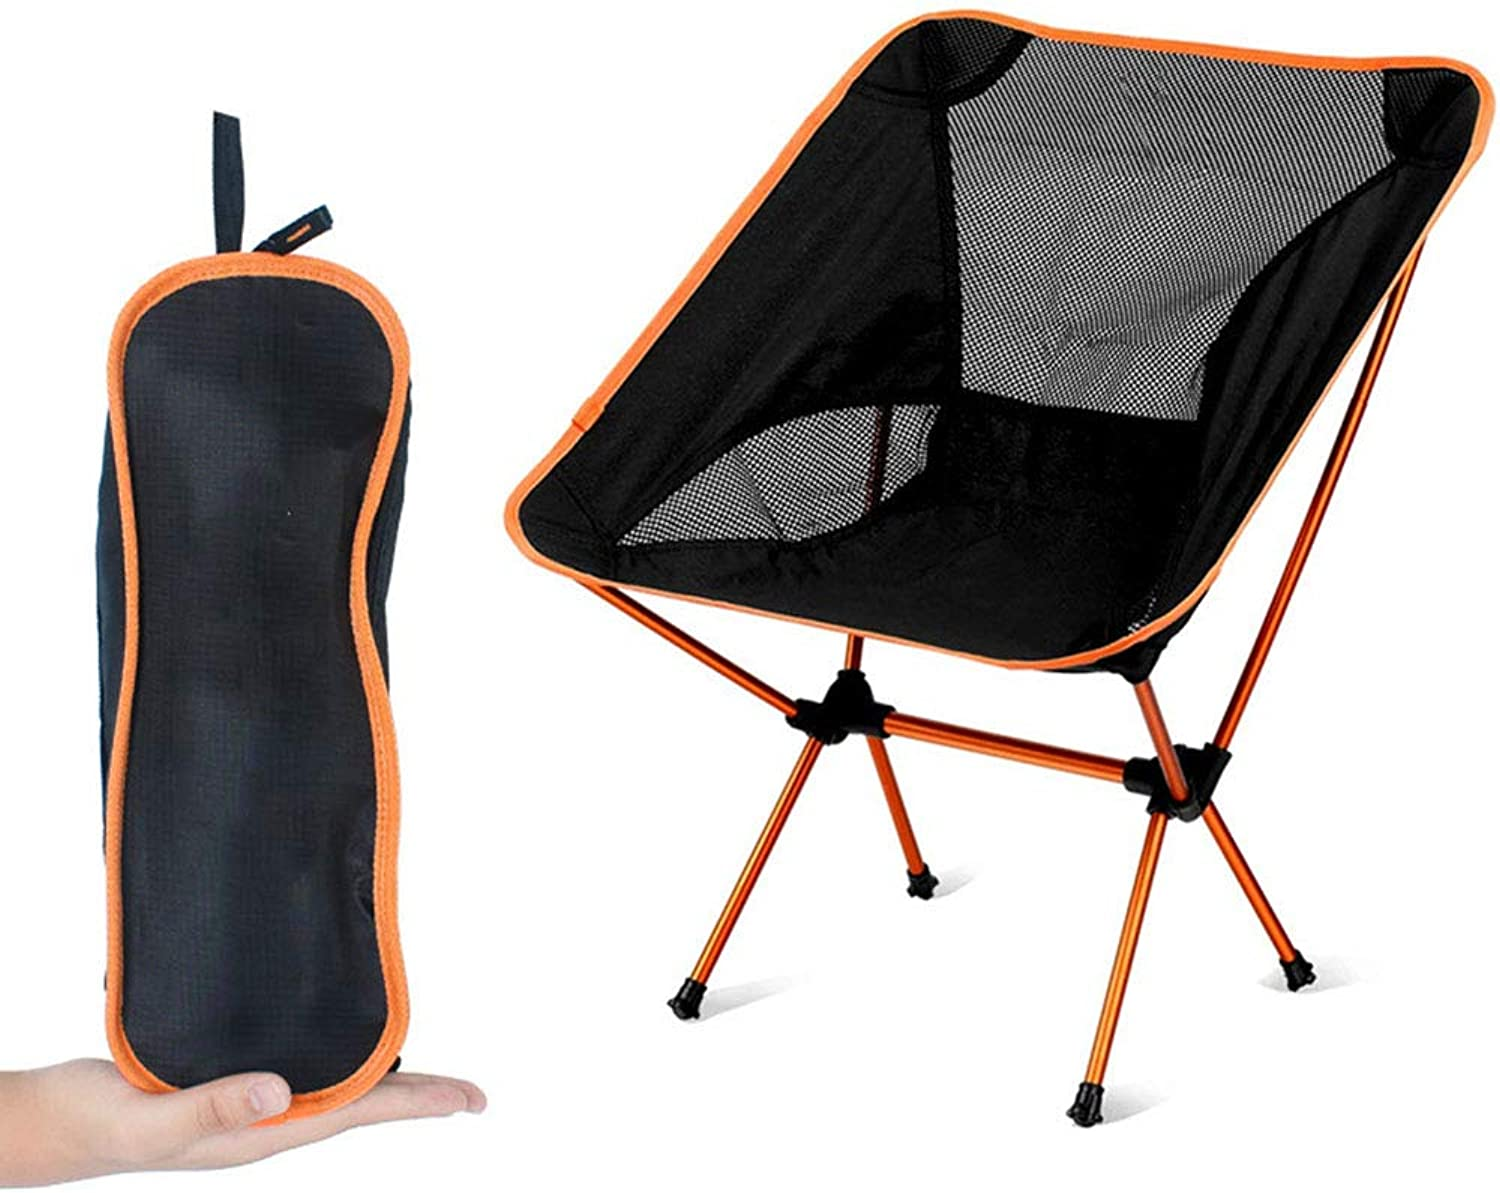 Portable Beach Camping Folding Chairs for Outdoor Mesh Fabric Aluminum Alloy Bracket with Compact Storage Bag 185 KG LoadBearing Ideal for Picnic Fishing